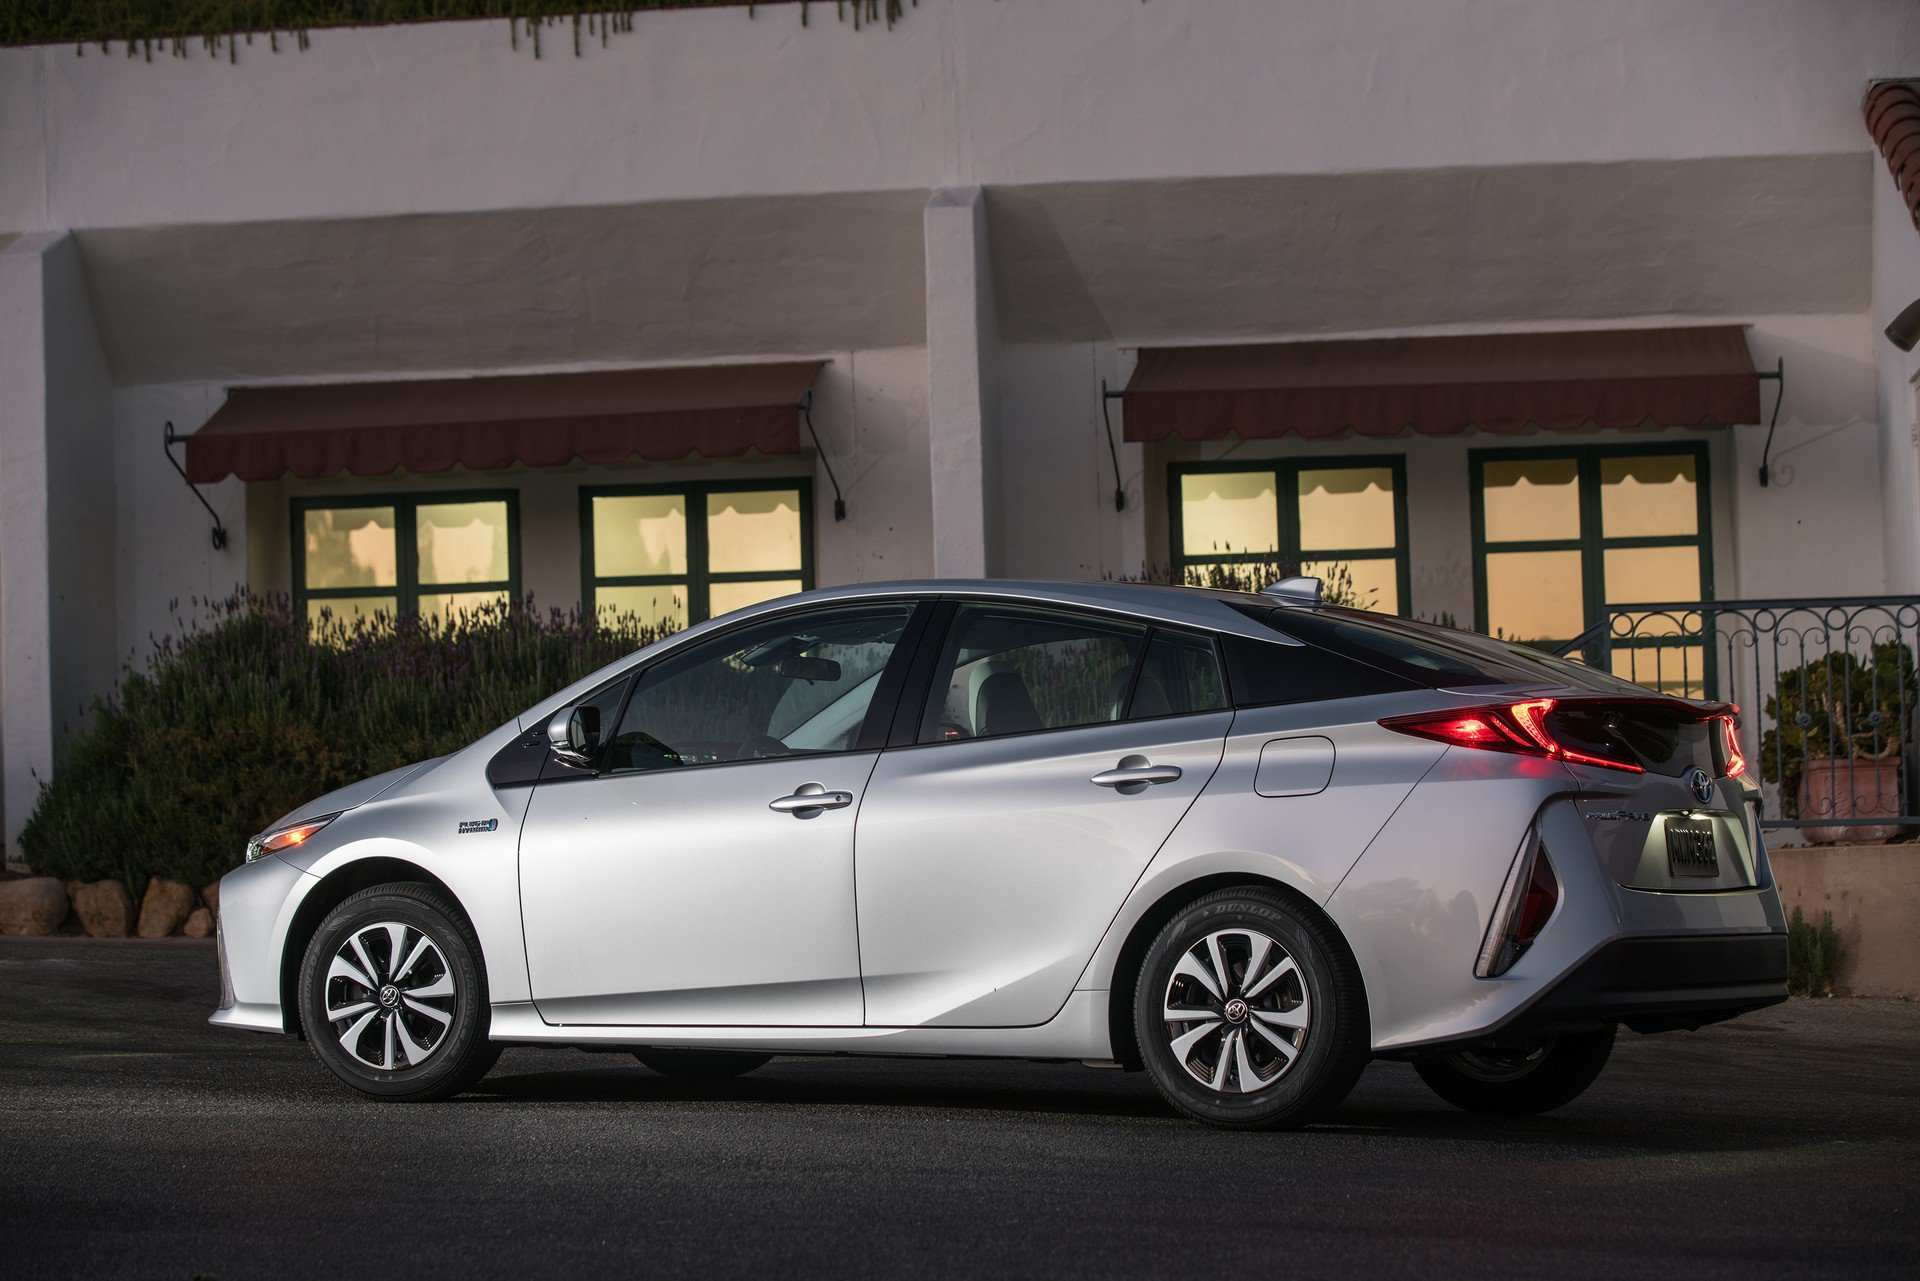 84 All New Toyota Prius 2020 Pricing by Toyota Prius 2020